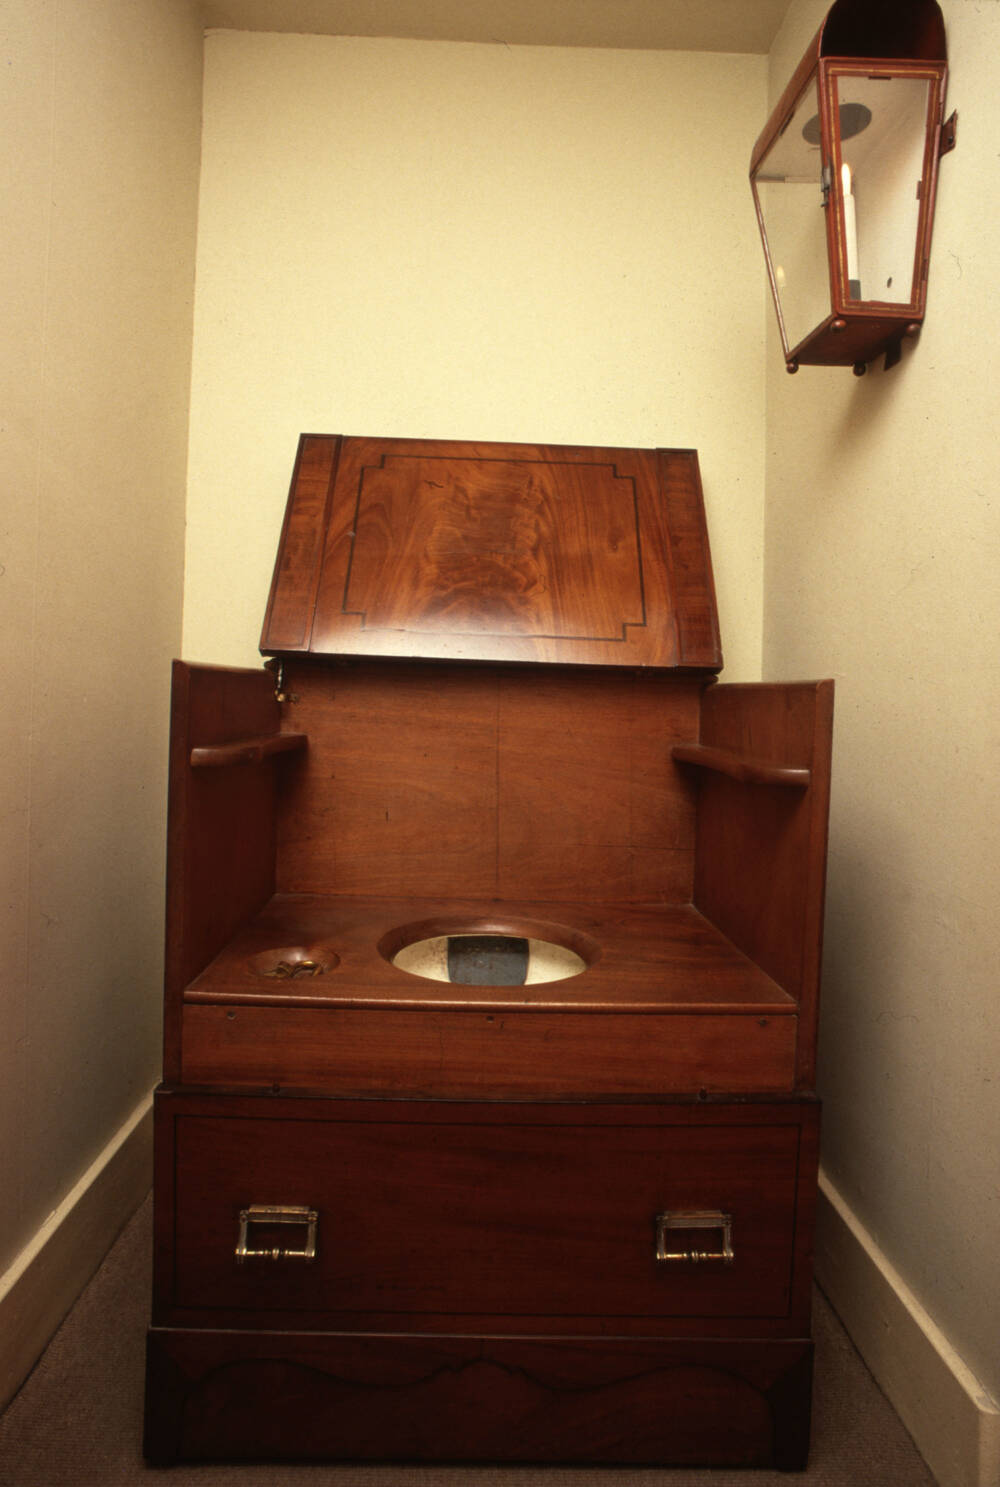 wooden commode in a very narrow room